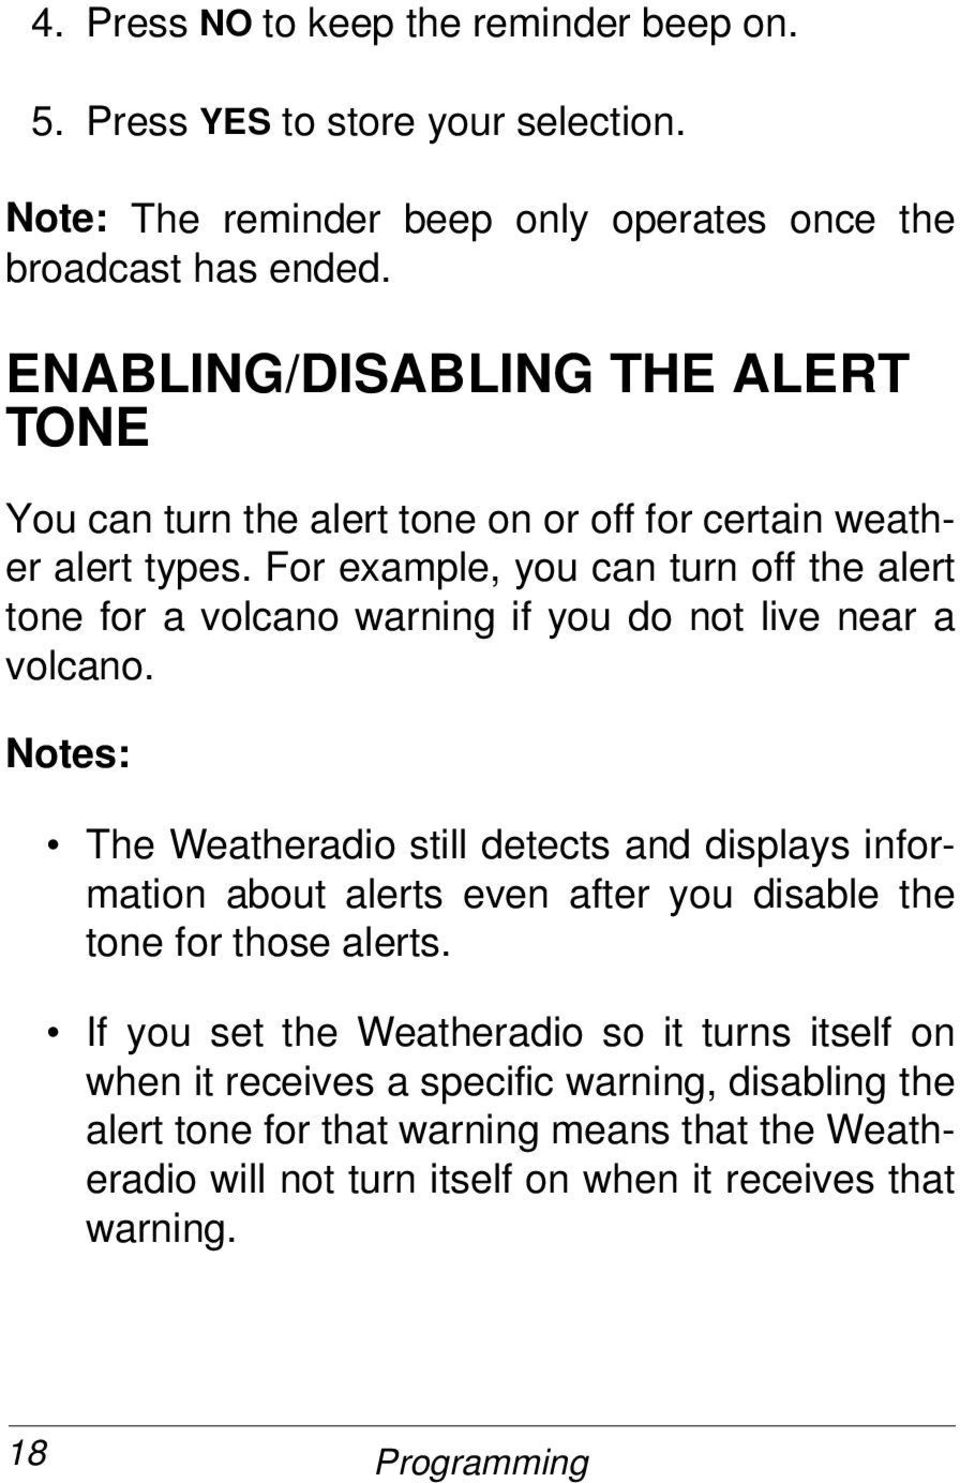 For example, you can turn off the alert tone for a volcano warning if you do not live near a volcano.